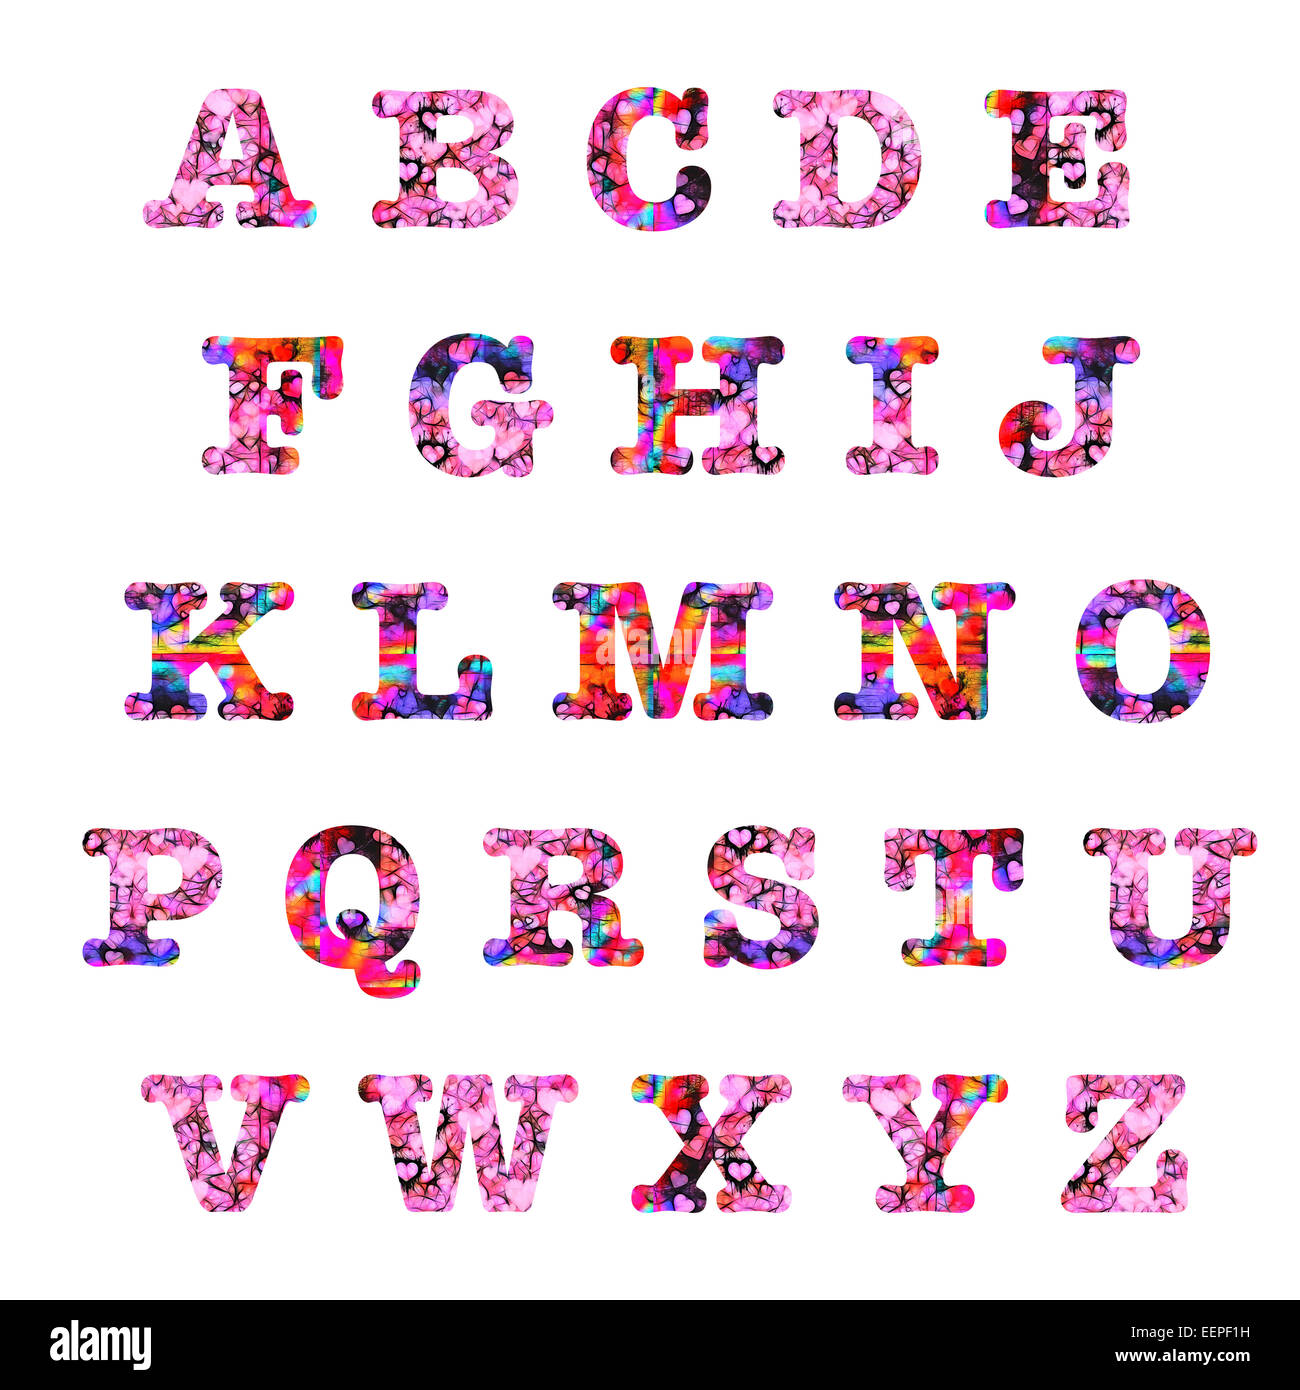 Pink red hearts upper case capital letters alphabet text artistic